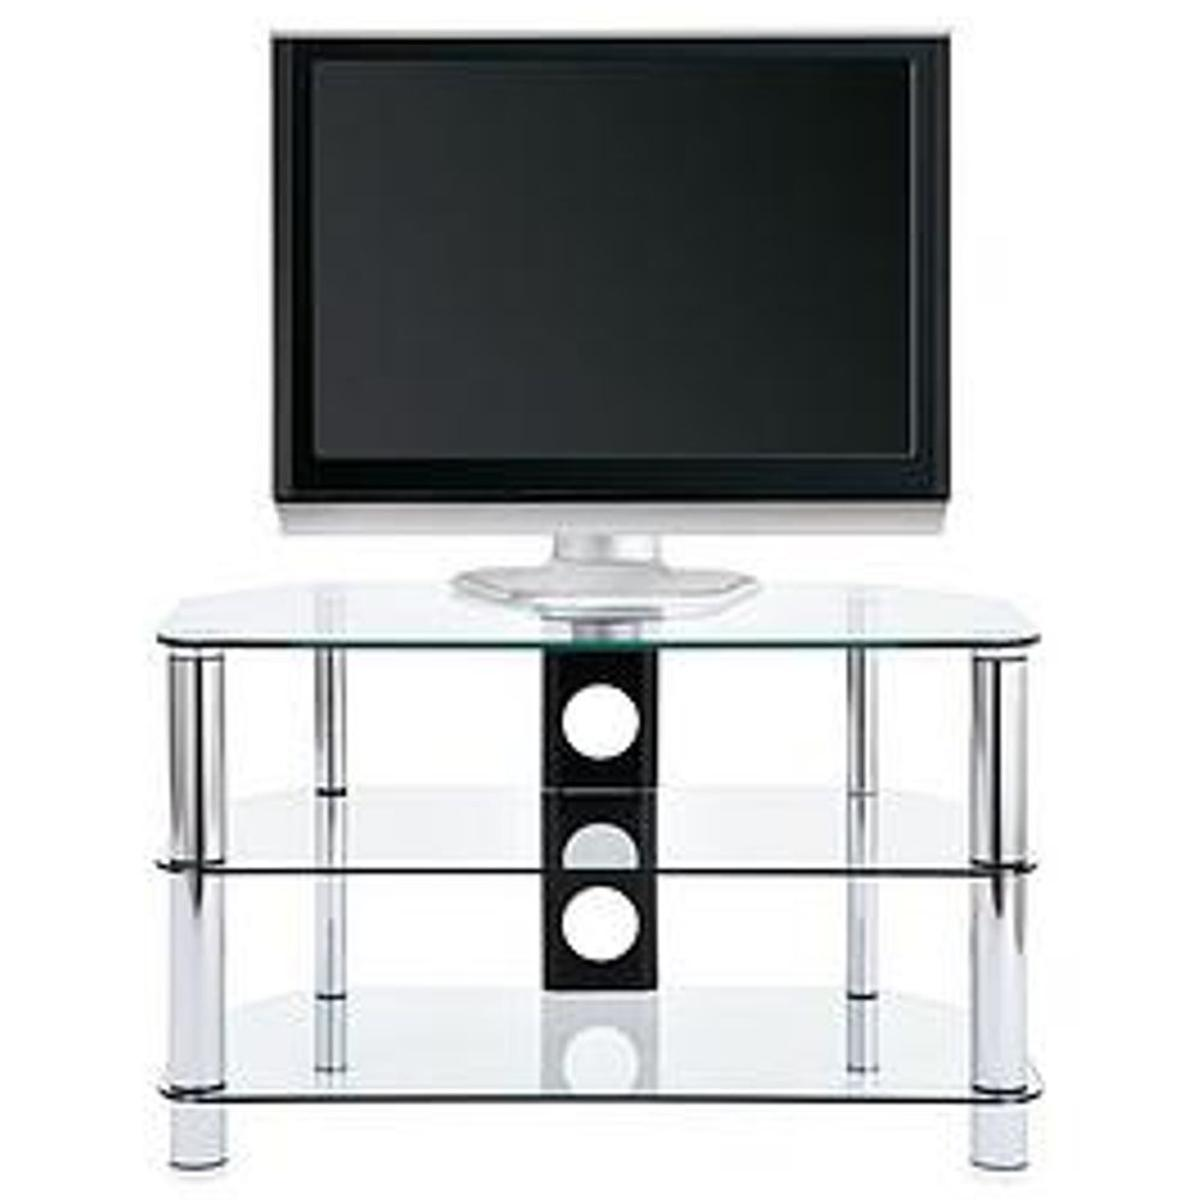 RRP: £159  SALE SALE SALE !!  Unused Grade Zero TV Stand available in Black or Grey.  OHstore - DON'T MISS OUT follow our page for the best deals. We offer FREE, 3-5 Business days delivery on overs of £250 within a 30 mile radius of LS10 and for next day or day of your choice there is an additional charge determined upon your location. If you don't see what you like feel free to enquire on;  WhatsApp 07595034353 ALL ITEMS ARE NOT LISTED, SO PLEASE FEEL FREE TO ENQUIRE.